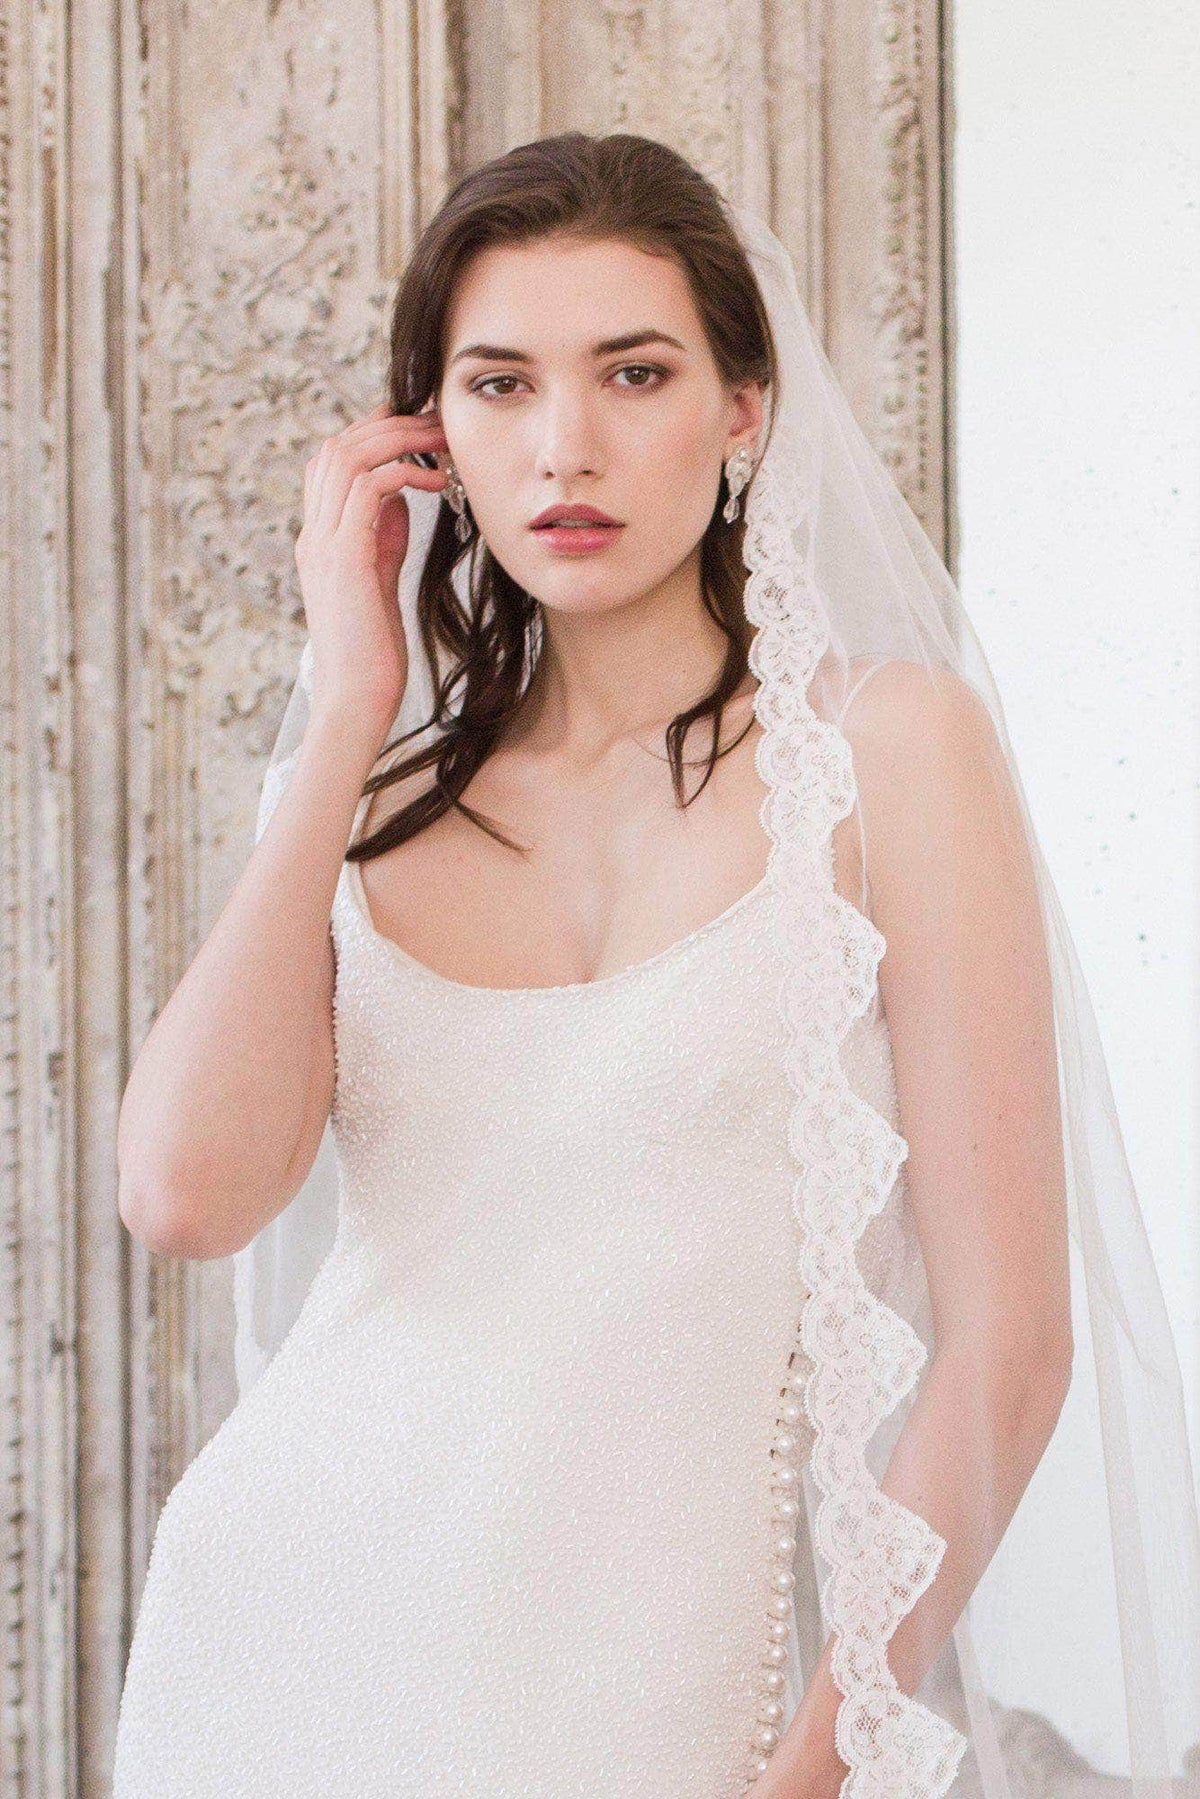 Full lace edged wedding veil - 'Coria'